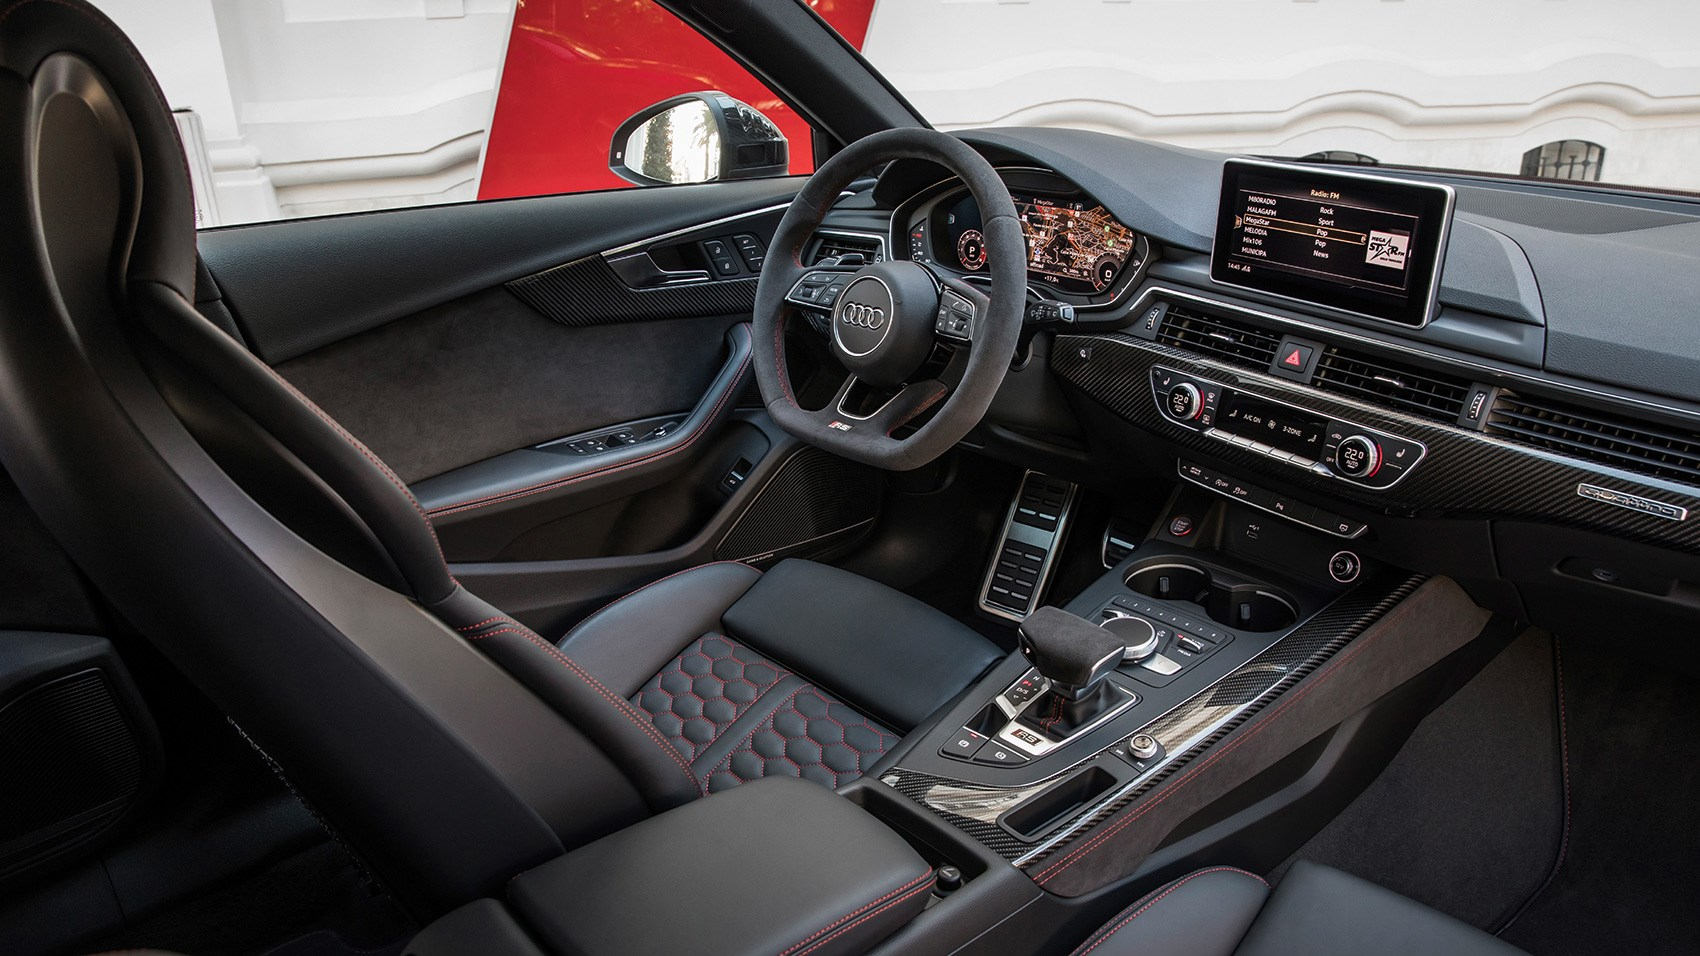 New 2018 Audi RS4 Avant interior